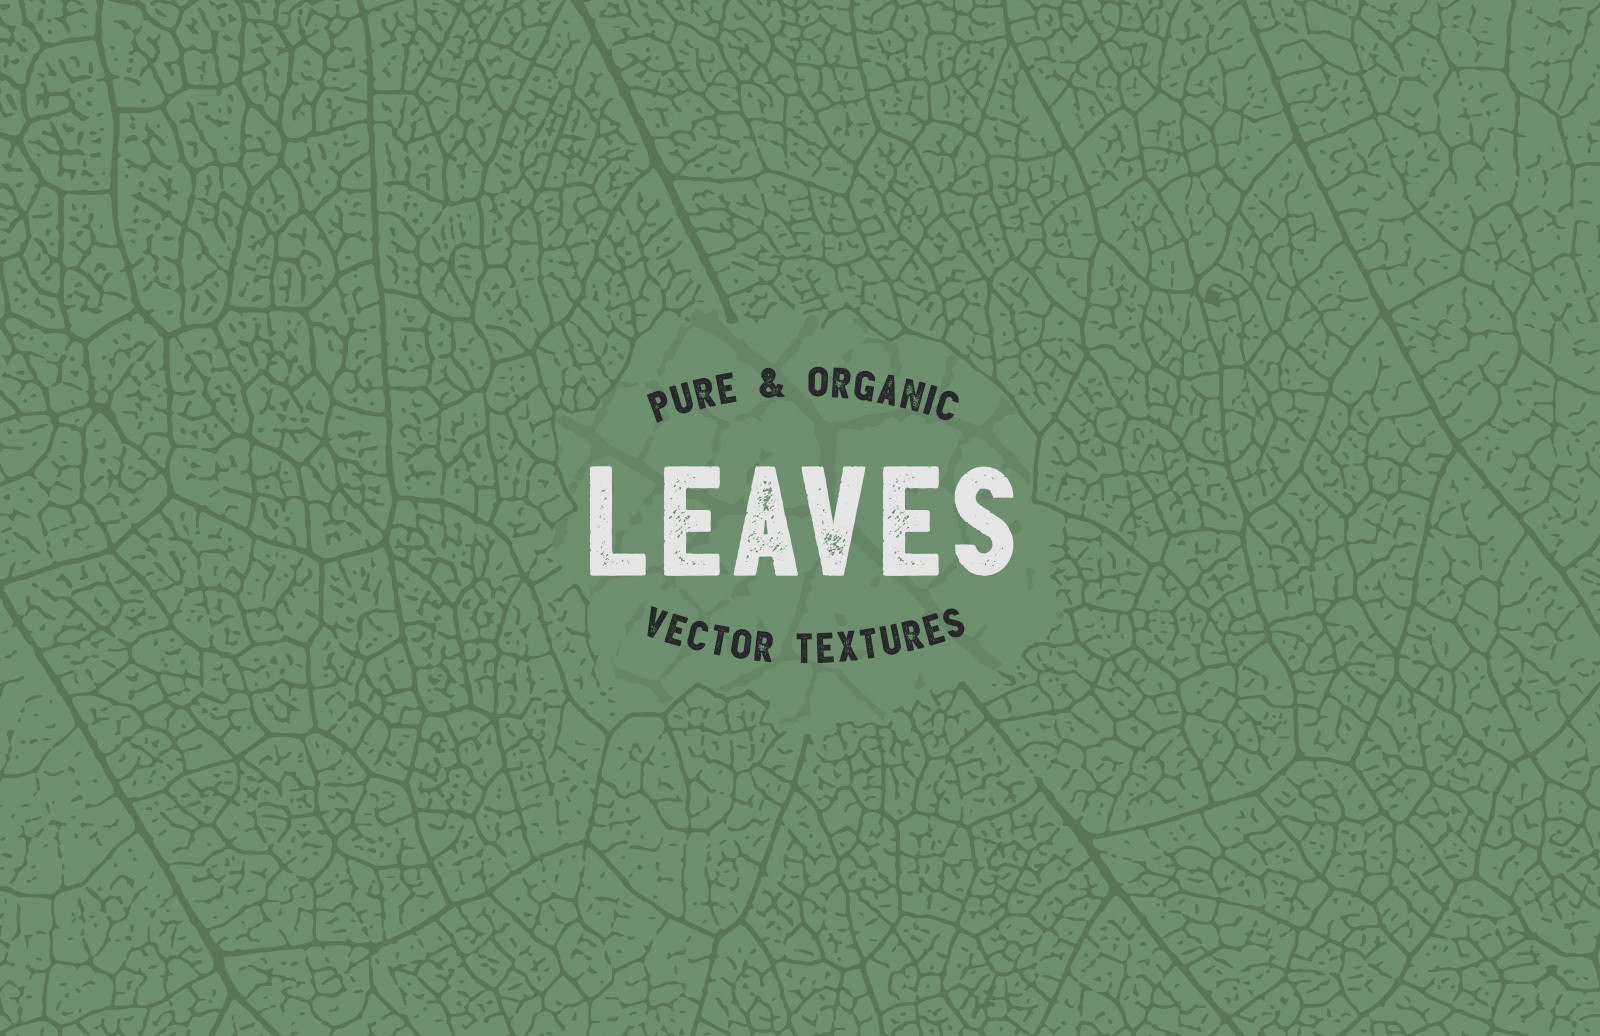 Organic Leaves Vector Textures